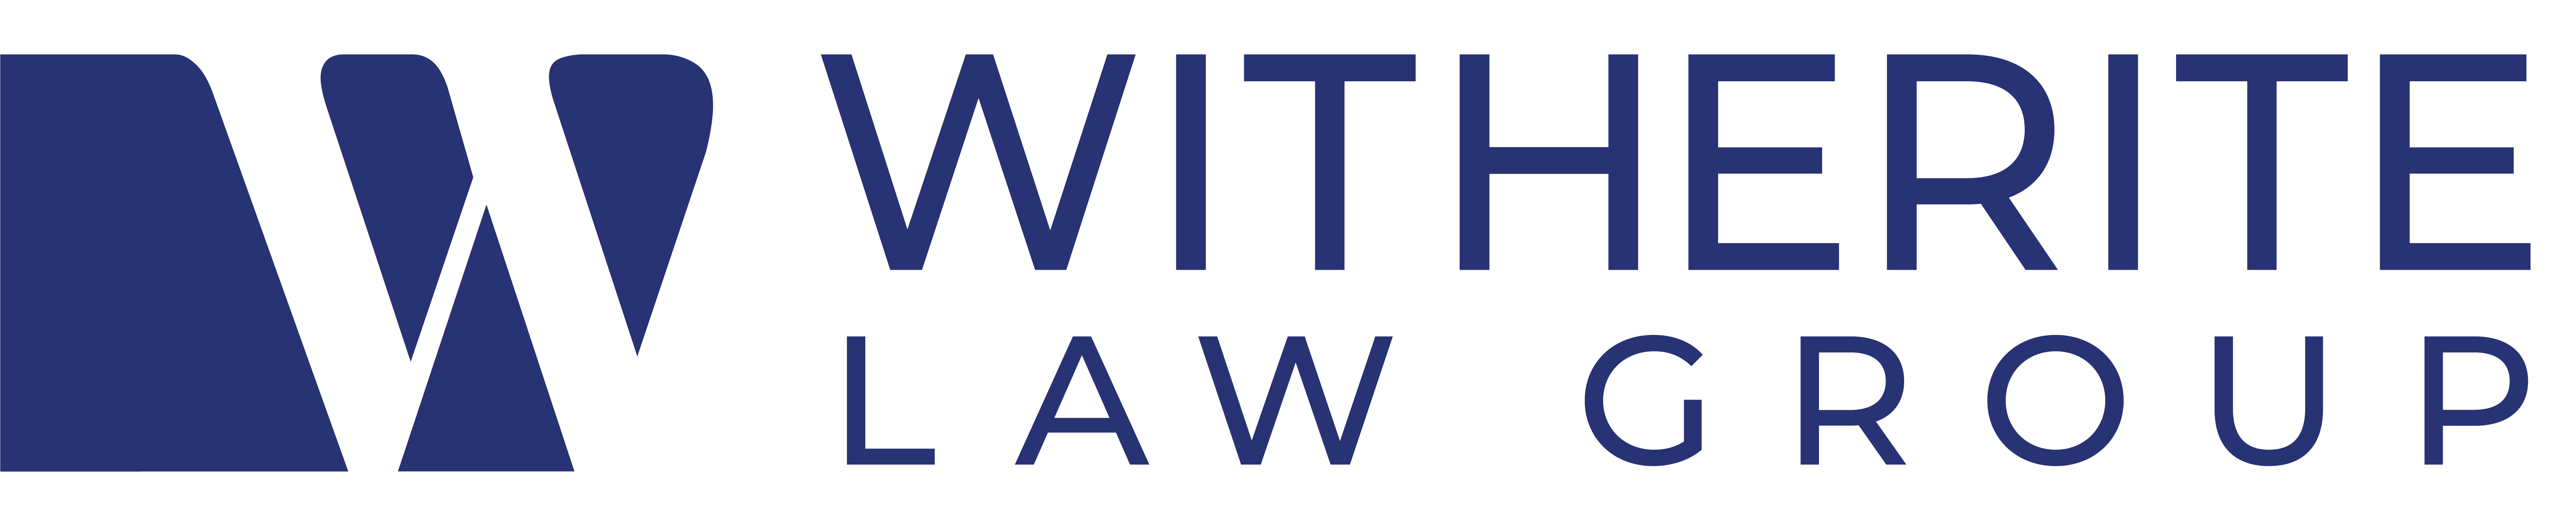 Witherite Law Group logo